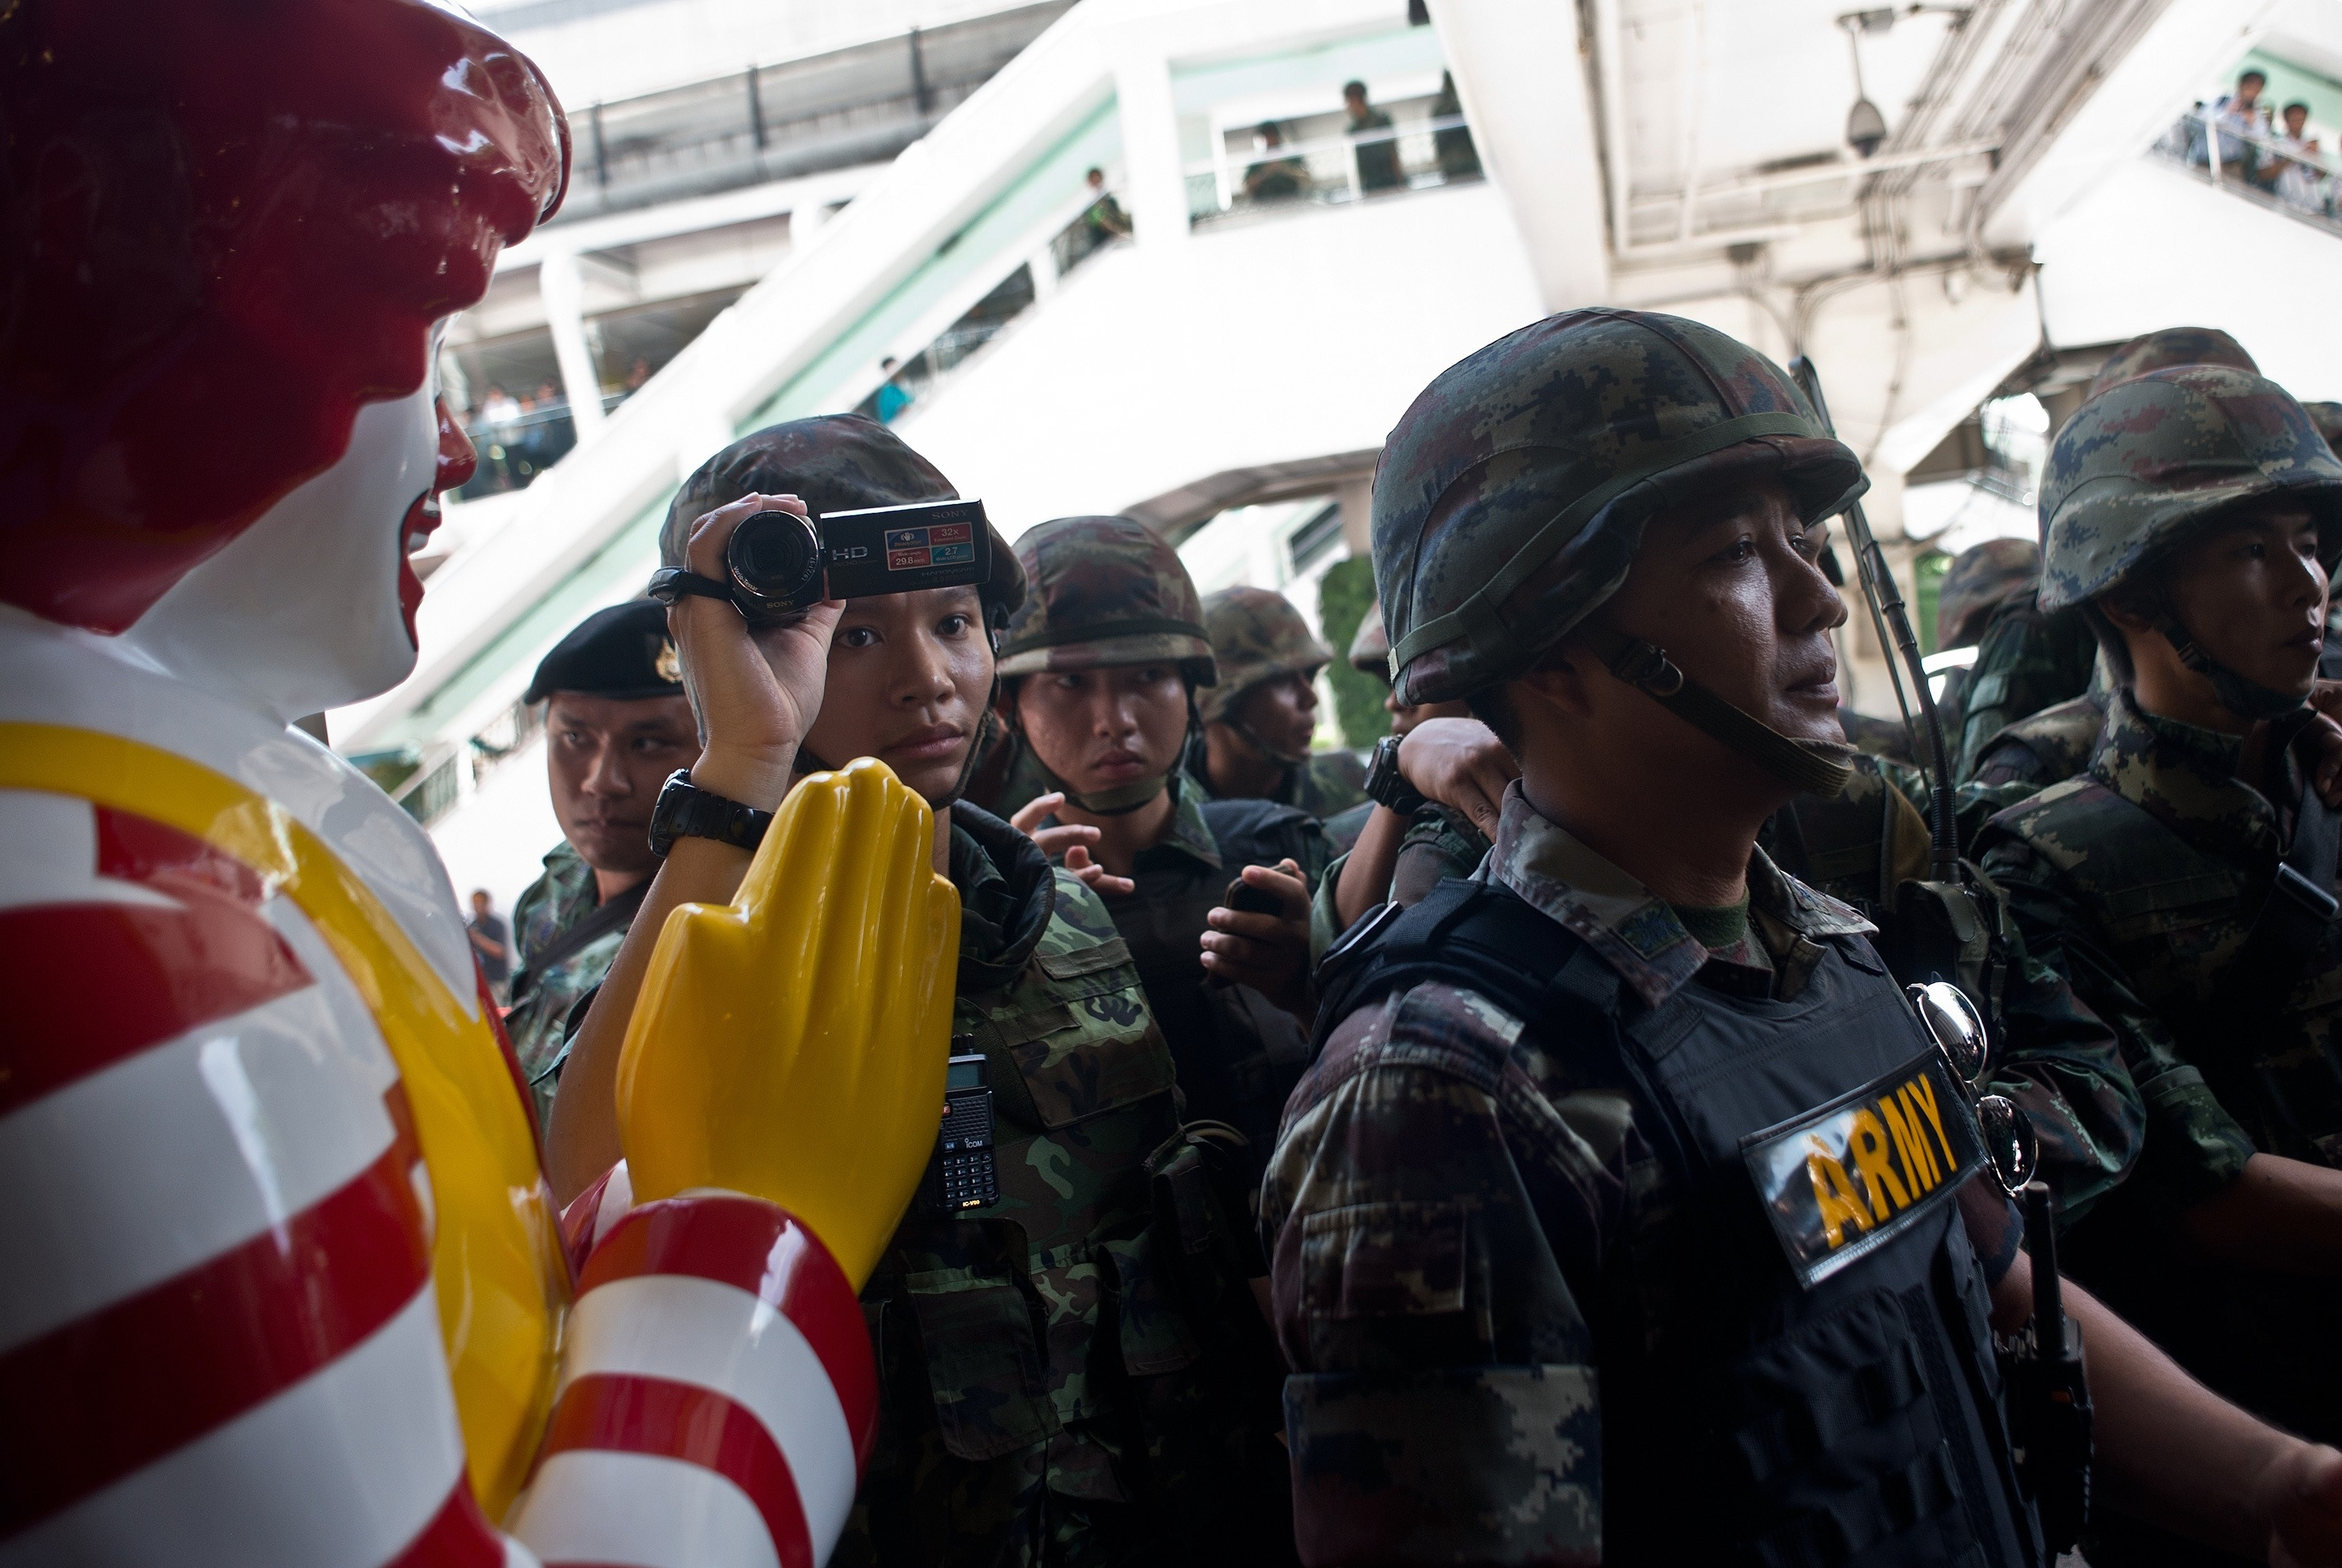 Thai-army soldiers stand guard outside a McDonalds outlet ahead of a planned gathering in Bangkok on May 25, 2014.